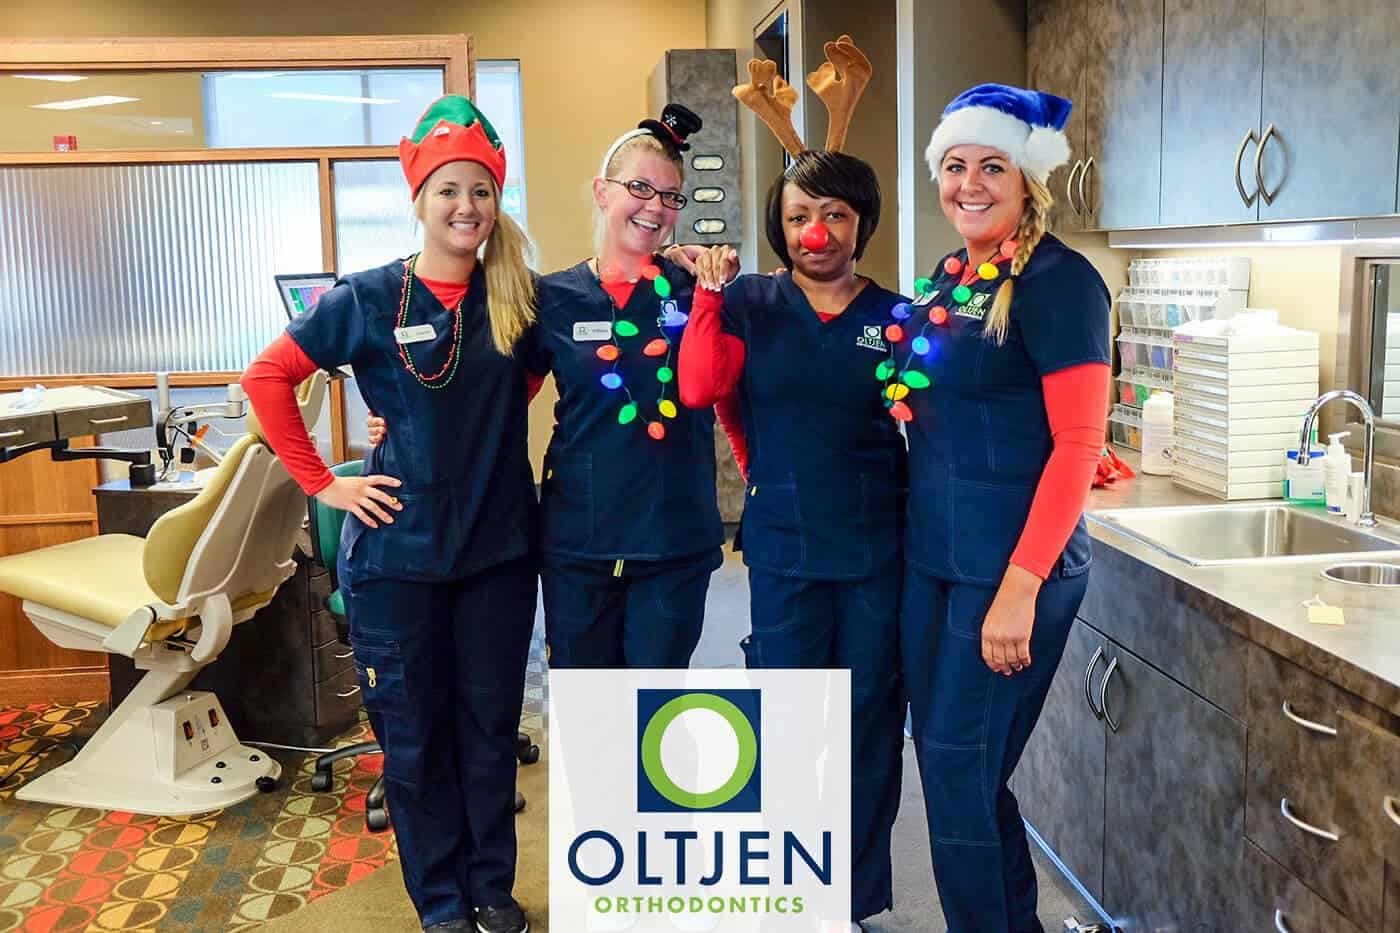 Oltjen-Orthodontics-Christmas-in-July-5-of-10